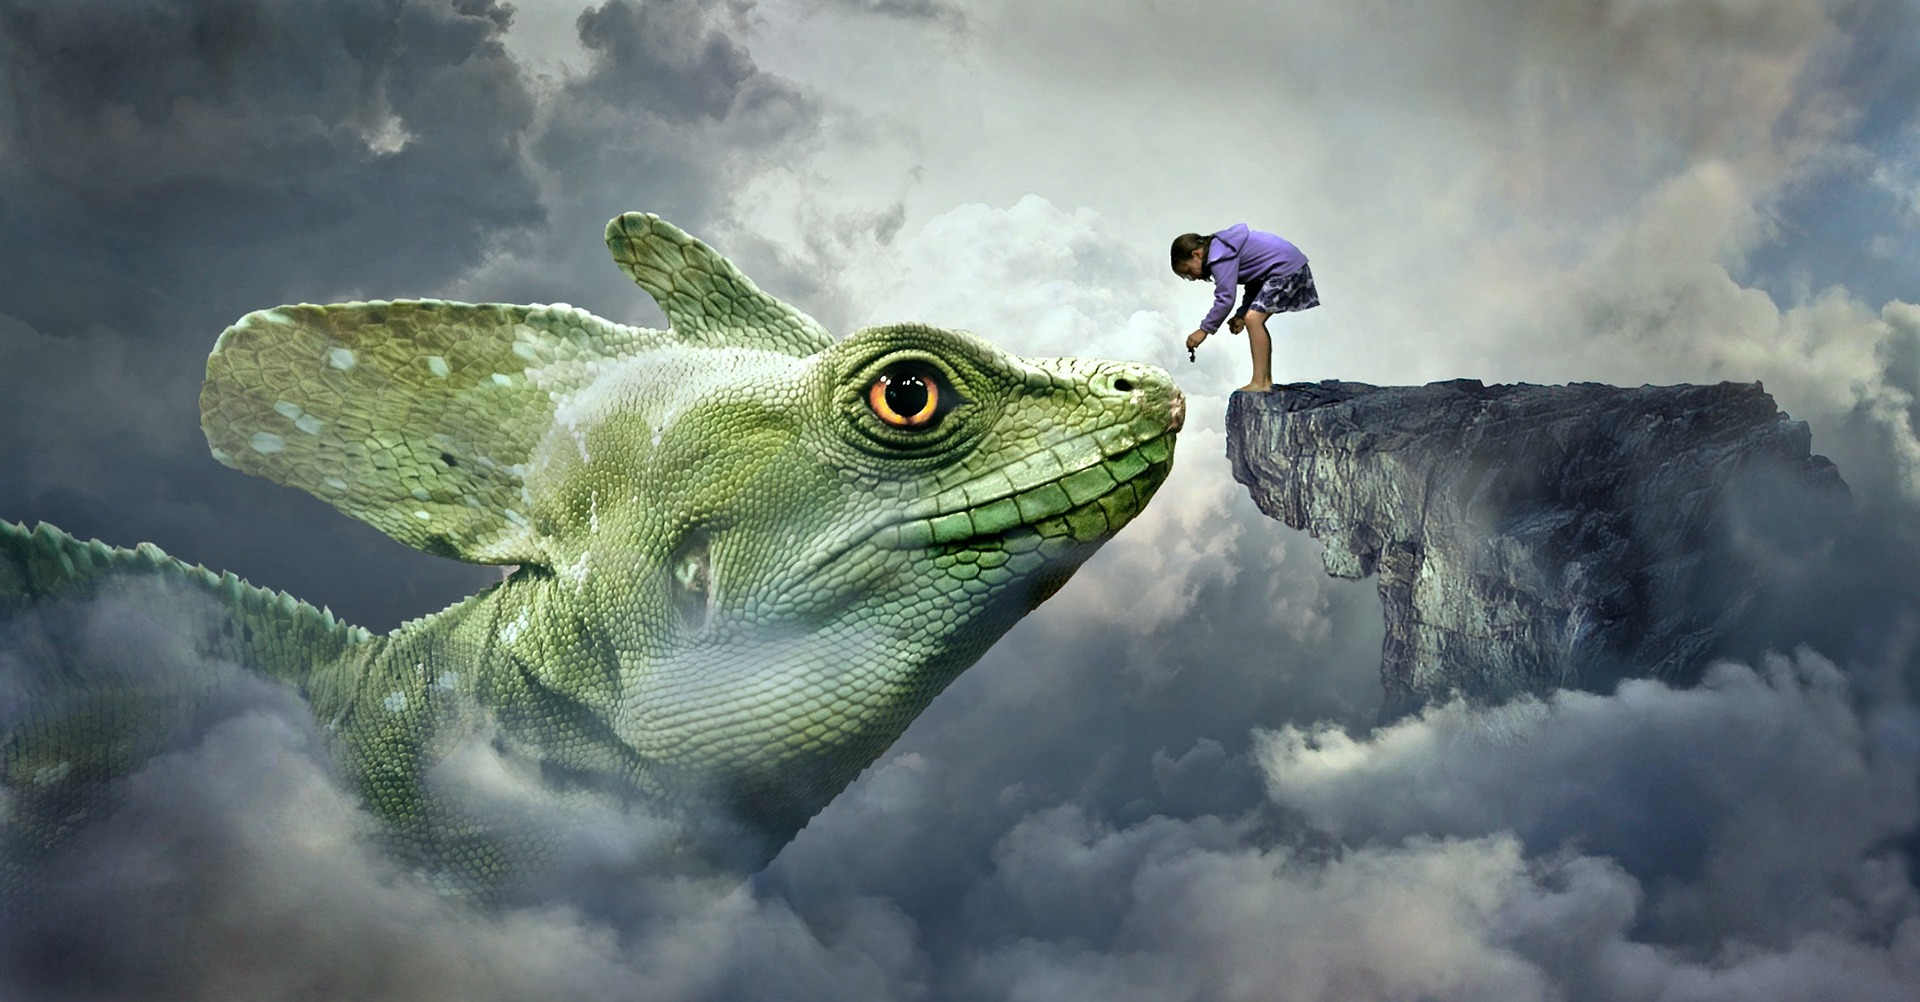 Boy touching dragon - don't give up your dreams